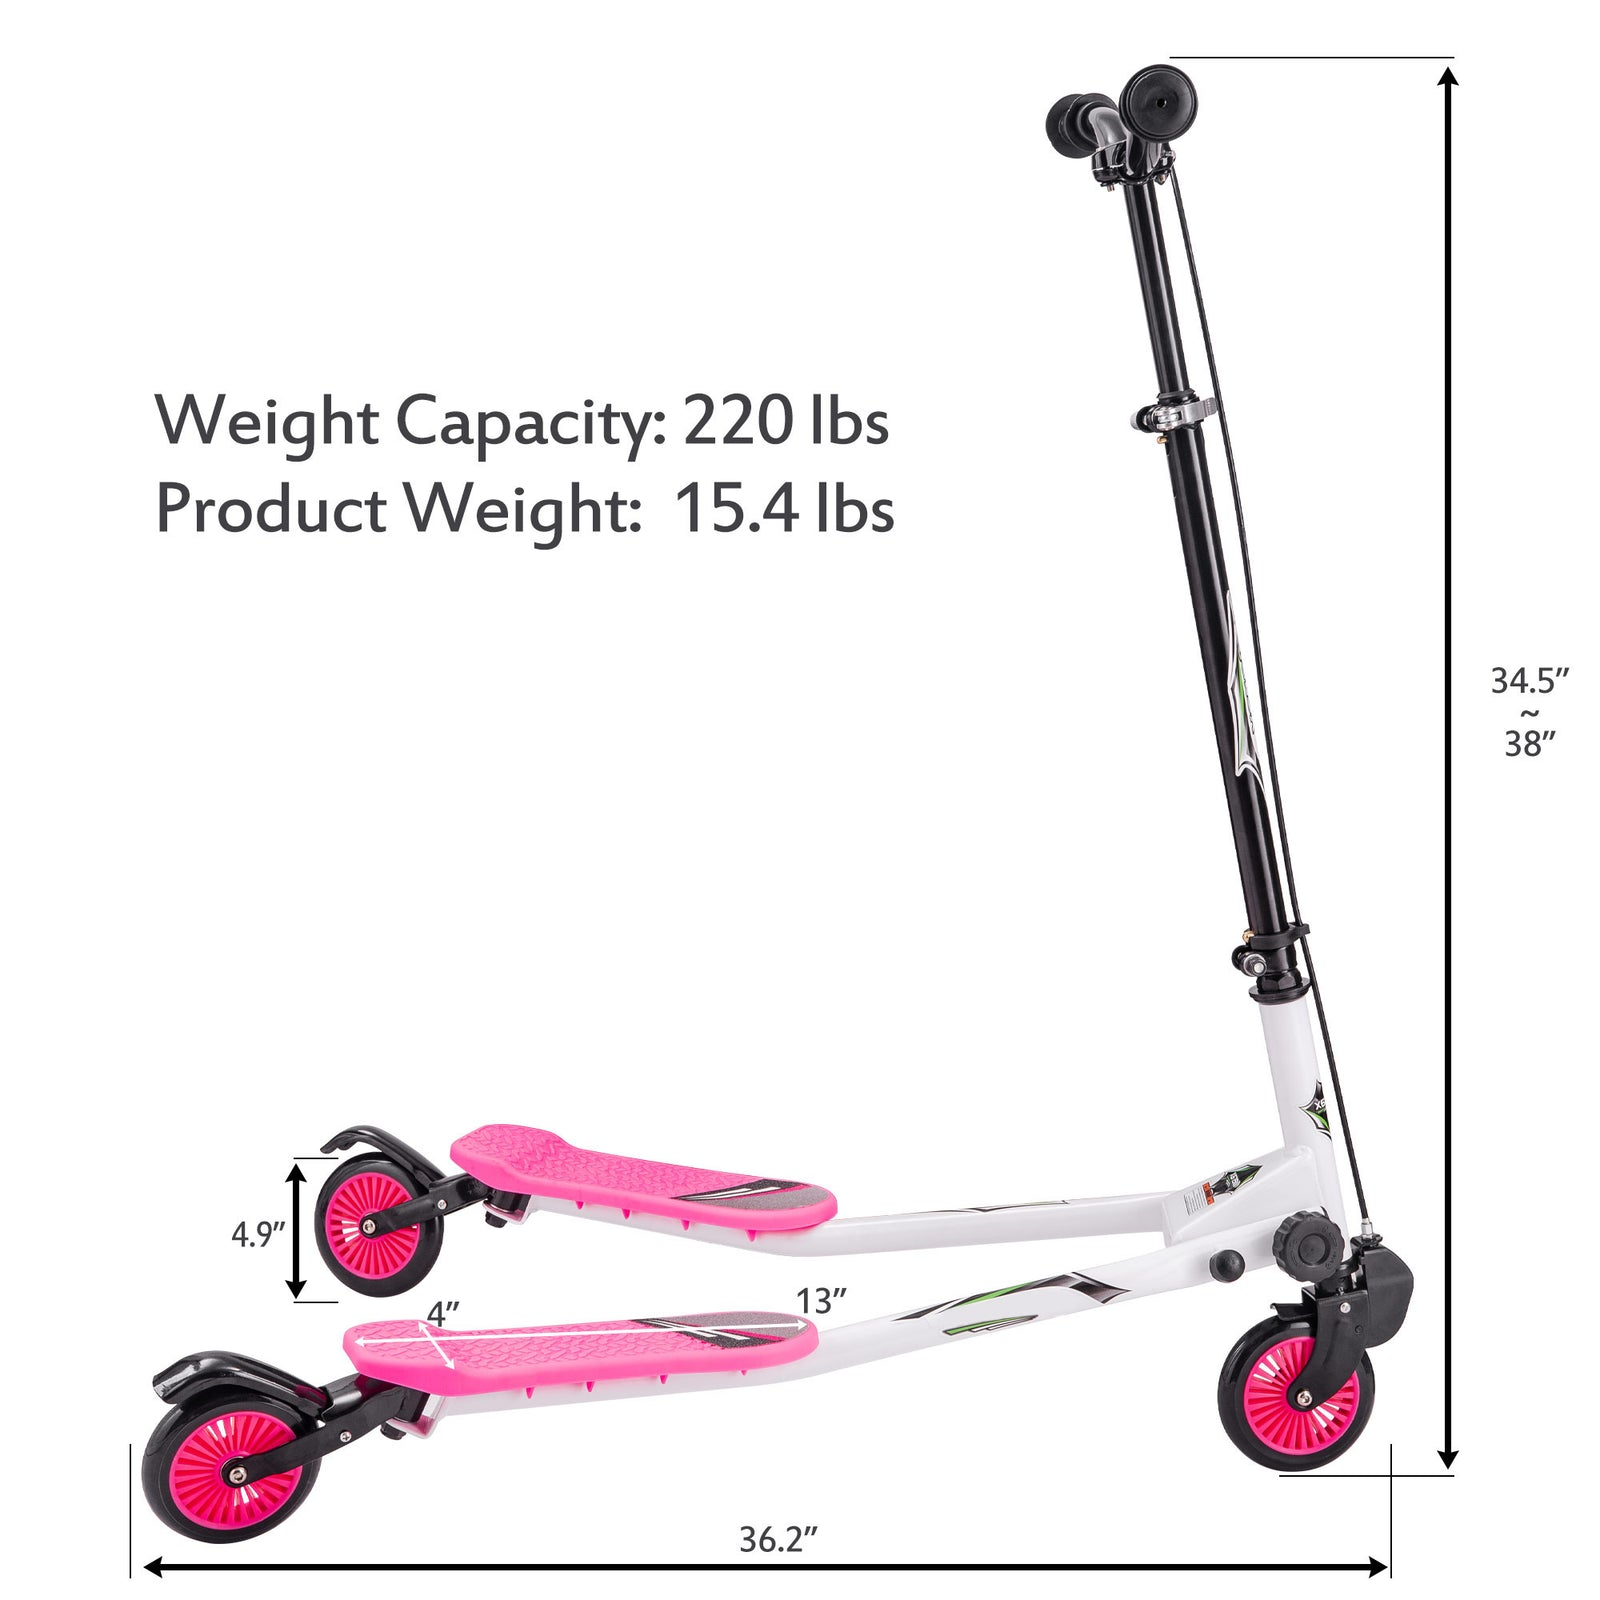 Hot Pink Foldable Kids Swing Scooter Push Drifting with Adjustable Handle for Kids Age 3+ Pink BH019536